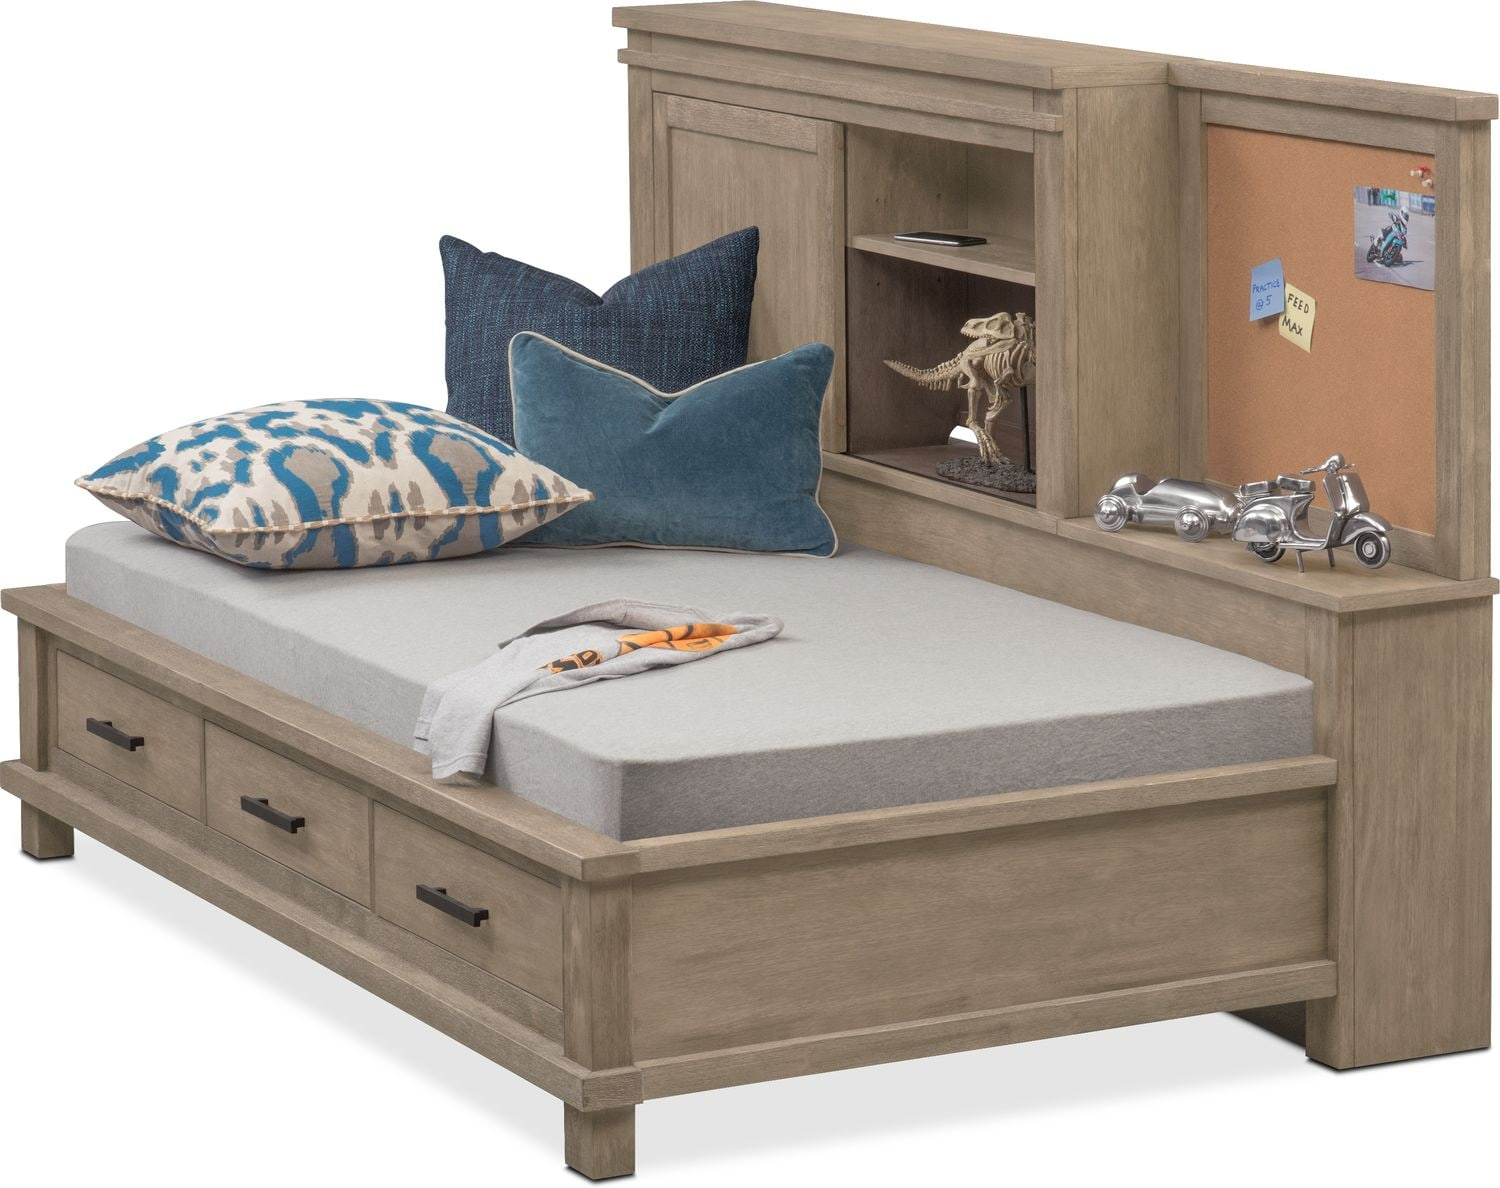 Tribeca youth twin lounge bed with storage gray value city furniture and mattresses for Youth storage bedroom furniture